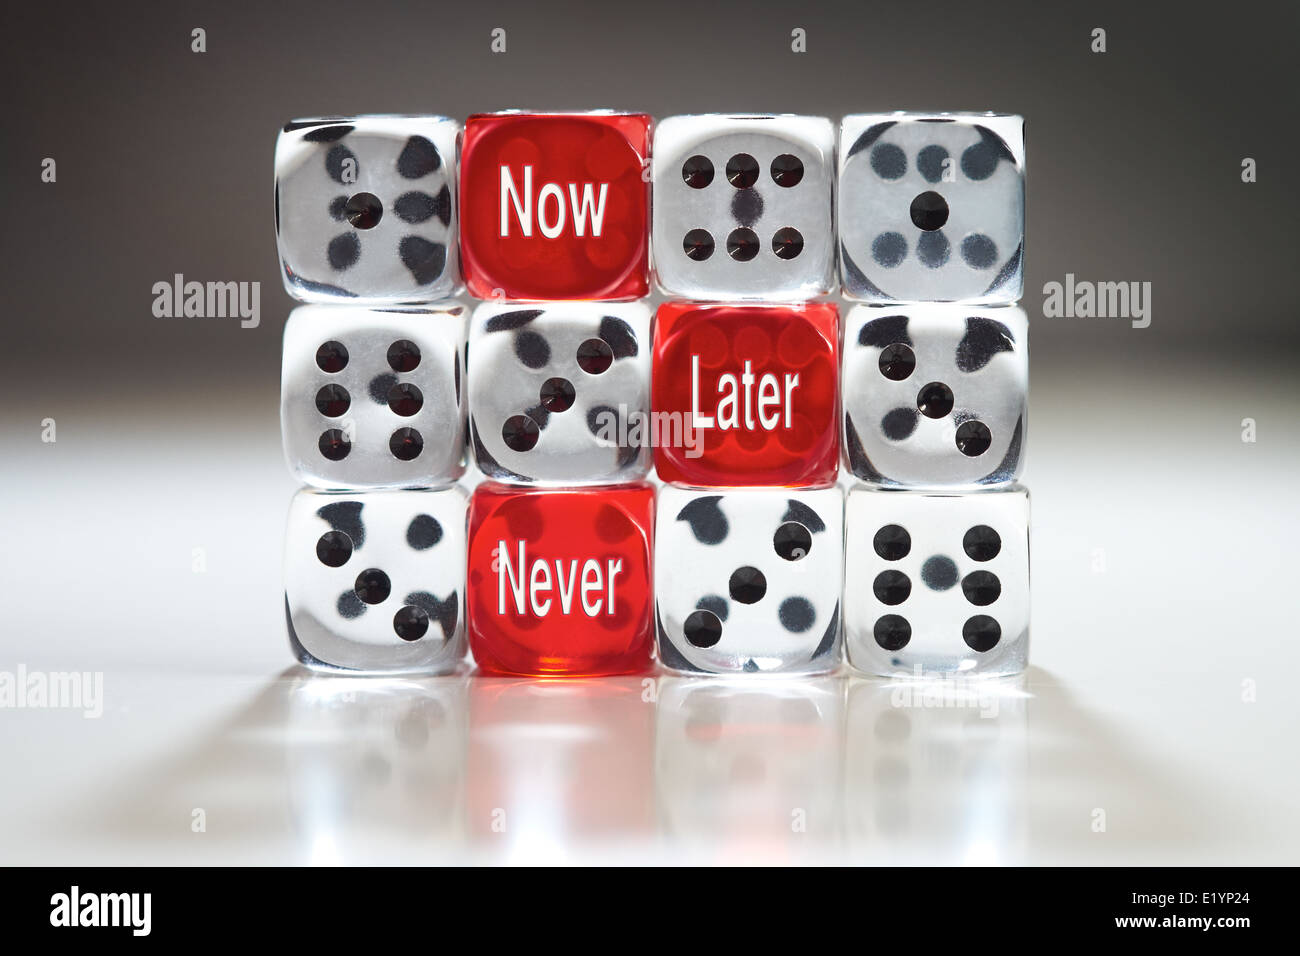 Wasting time concept, three red dice with Now, Later and Never in a wall of clear dice. - Stock Image